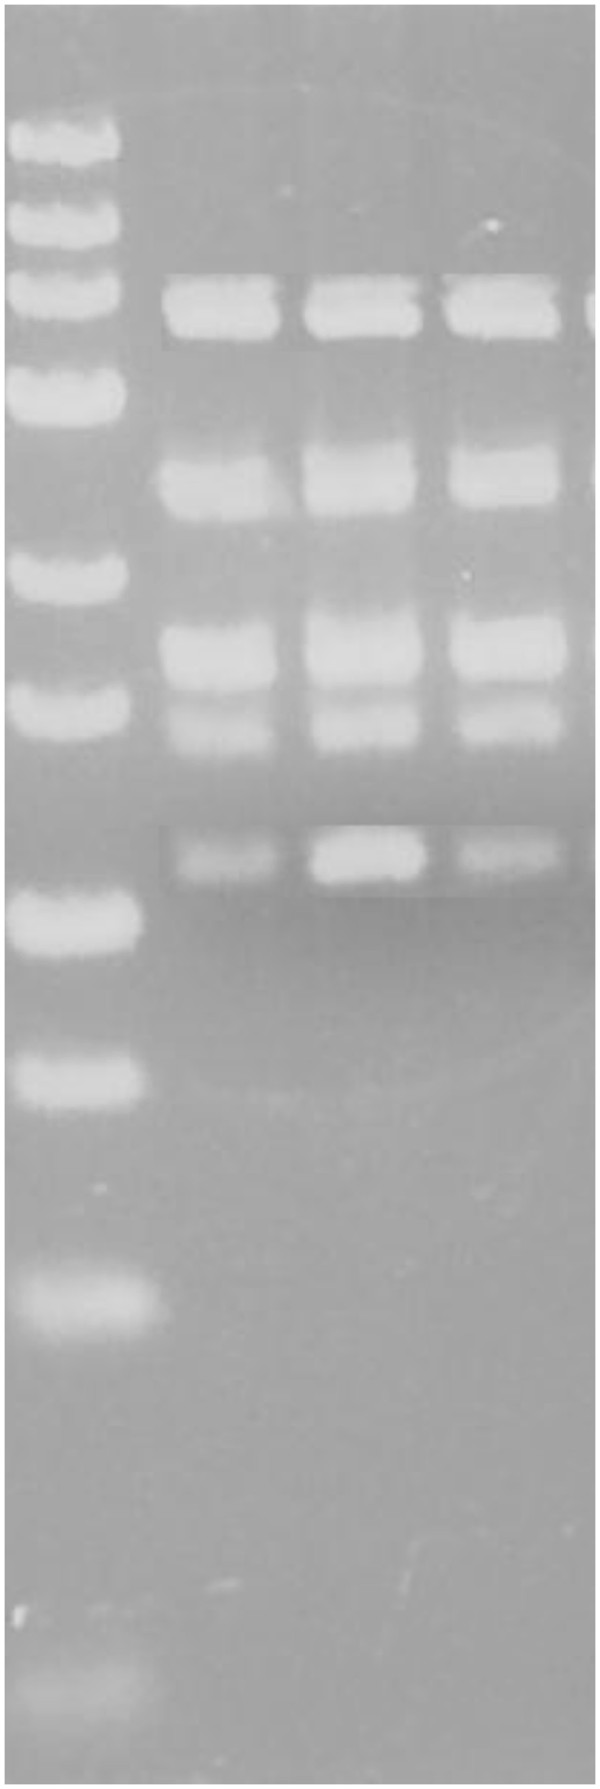 Agarose gel with PCR–RFLP products for analysis of MTHFR 677 C > T and eNOS +894 G > T and eNOS −786 T > C . Lane 1 contains <t>Fermentas</t> O' GeneRuler® Ultra Low Range DNA Ladder (25 bp - 700 bp); Lanes 2, 3 and 4 contain multiplex PCR-RFLP products digested with 1 U of NEB® <t>BanII</t> restriction enzyme (NEB®, England), 1 U Fermentas Fast Digest® HinfI restriction enzyme (Fermentas, Lithuania) and 1 U Fermentas Fast Digest® MspI restriction enzyme (Fermentas, Lithuania), respectively. The band sizes were 371 bp, 248 bp, 178 bp, 130 bp and 118 bp for all lanes. This indicates that the sample is a TT genotype for MTHFR 677 C > T, GG genotype for eNOS +894 G > T , and TT genotype for eNOS −786 T > C.